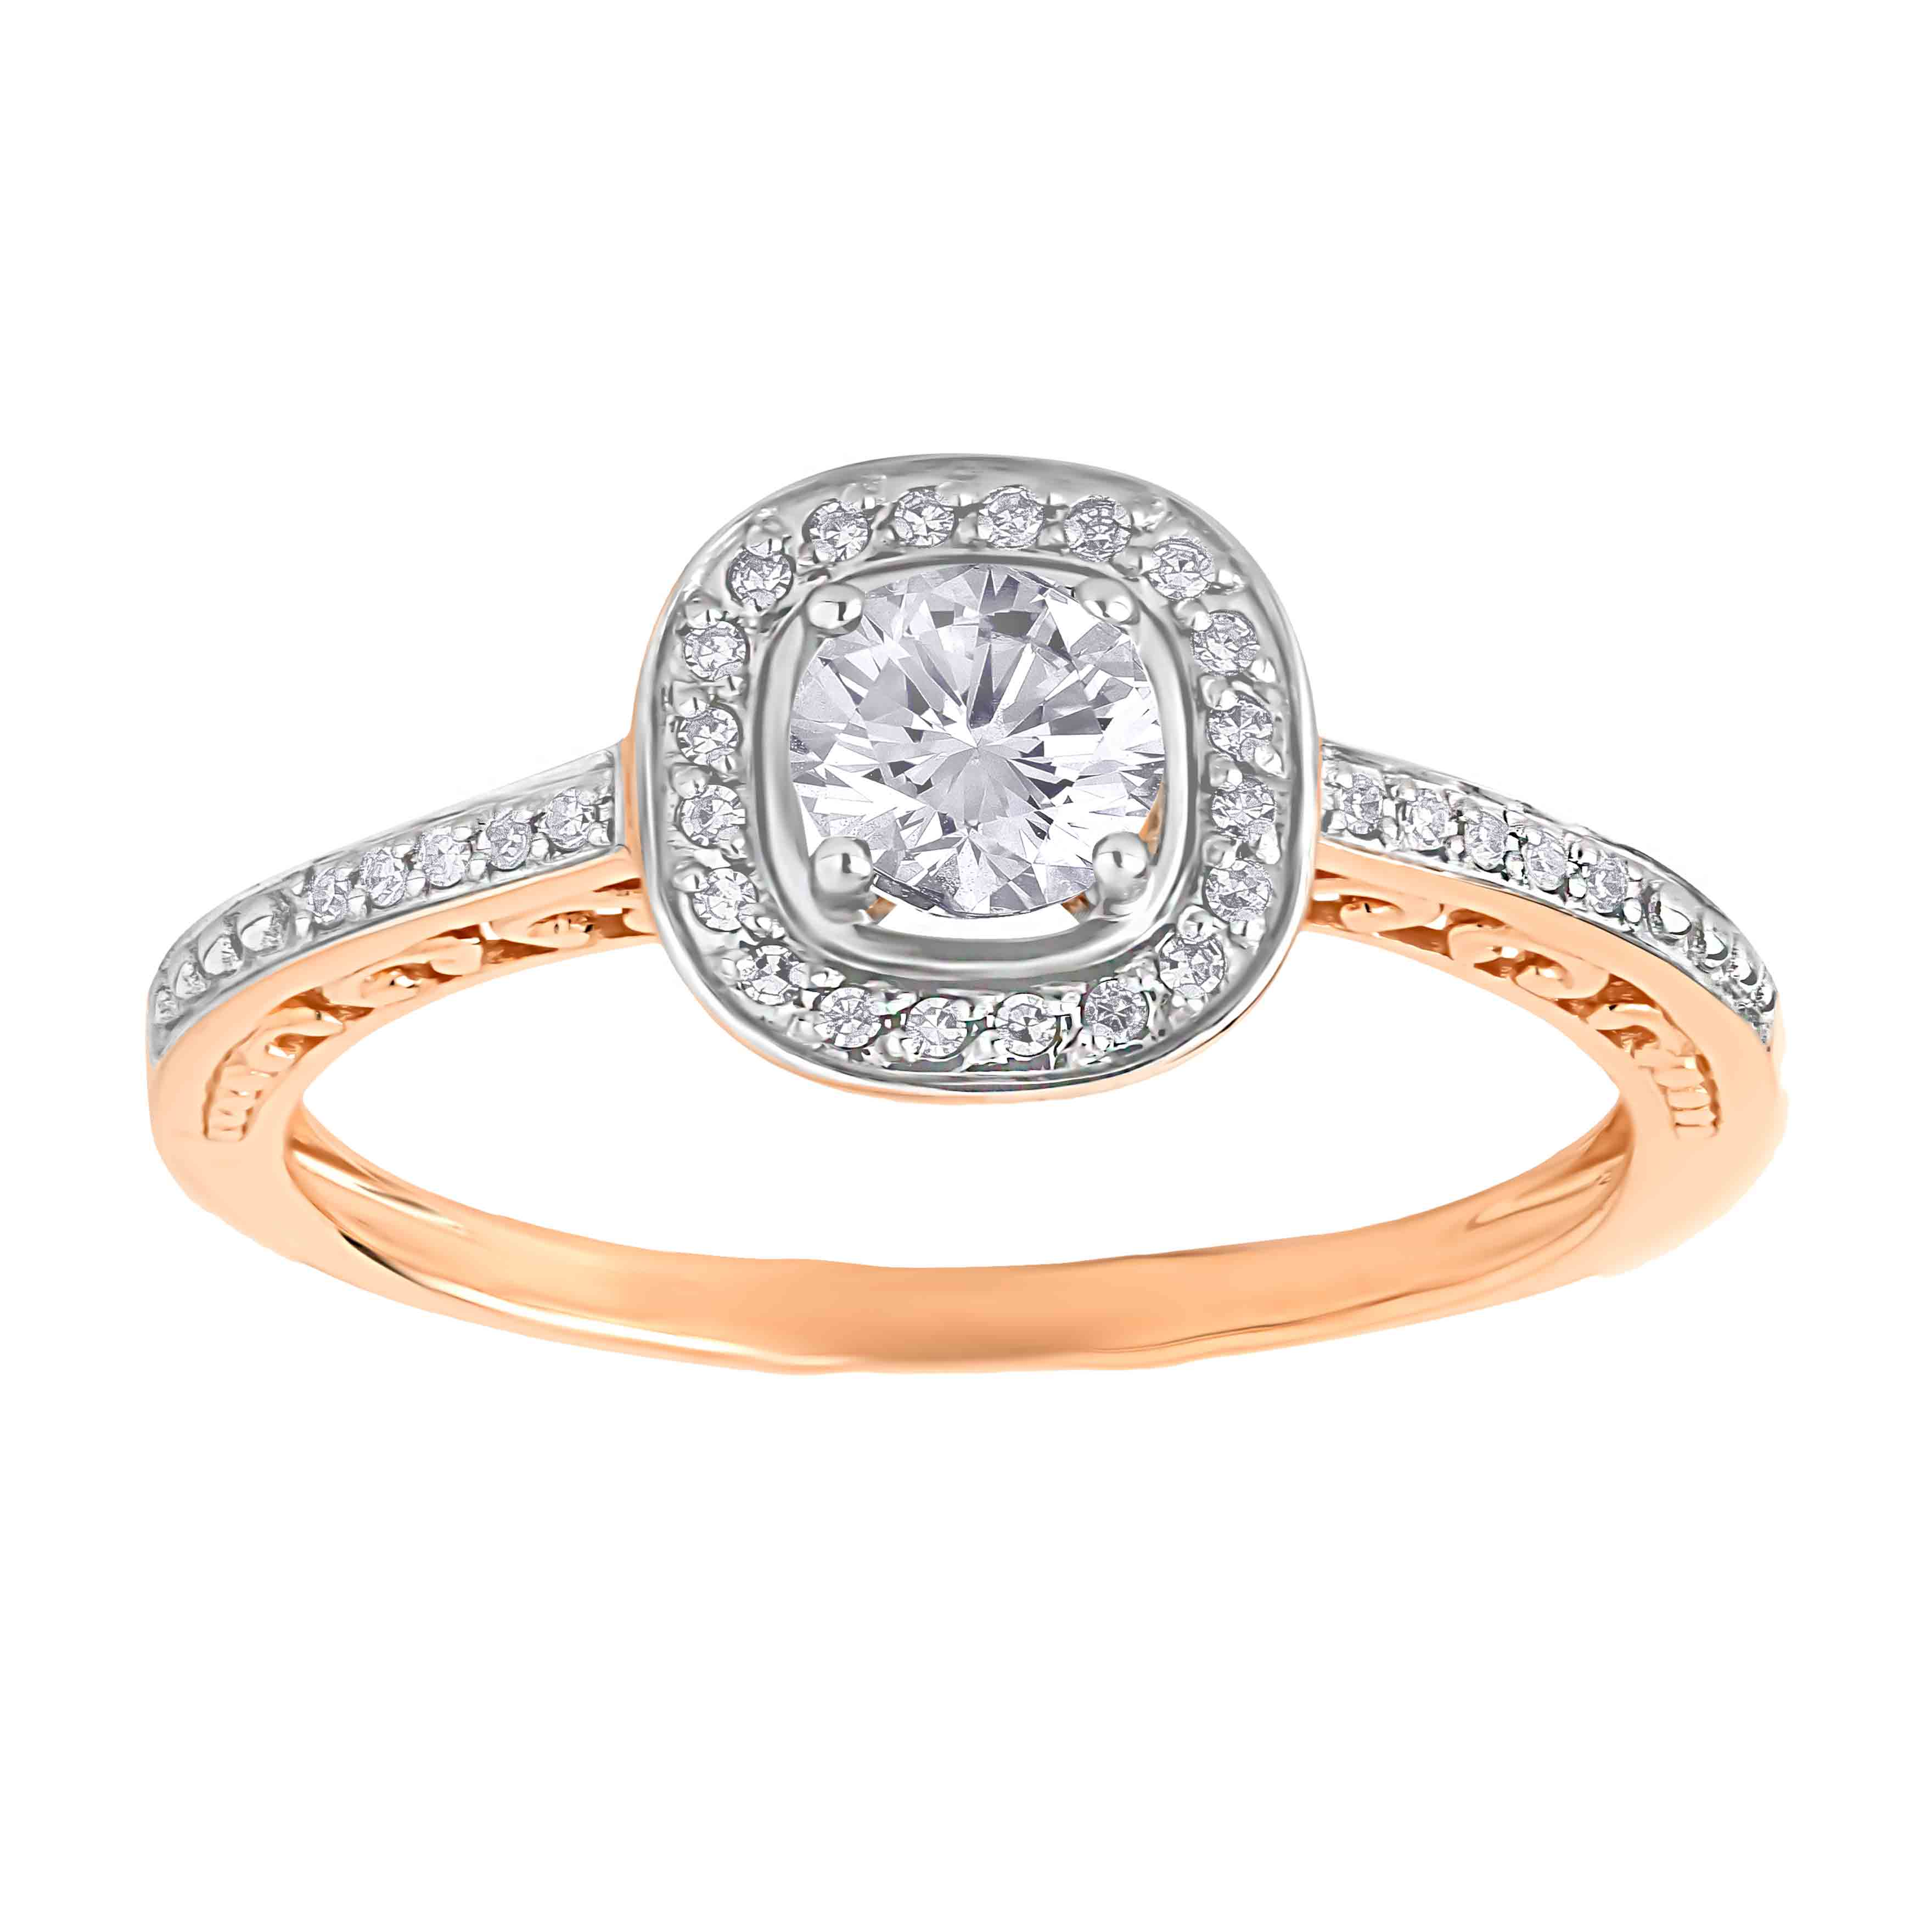 Affordable 14kt rose gold Swarovski topaz and diamond engagement ring. View 2